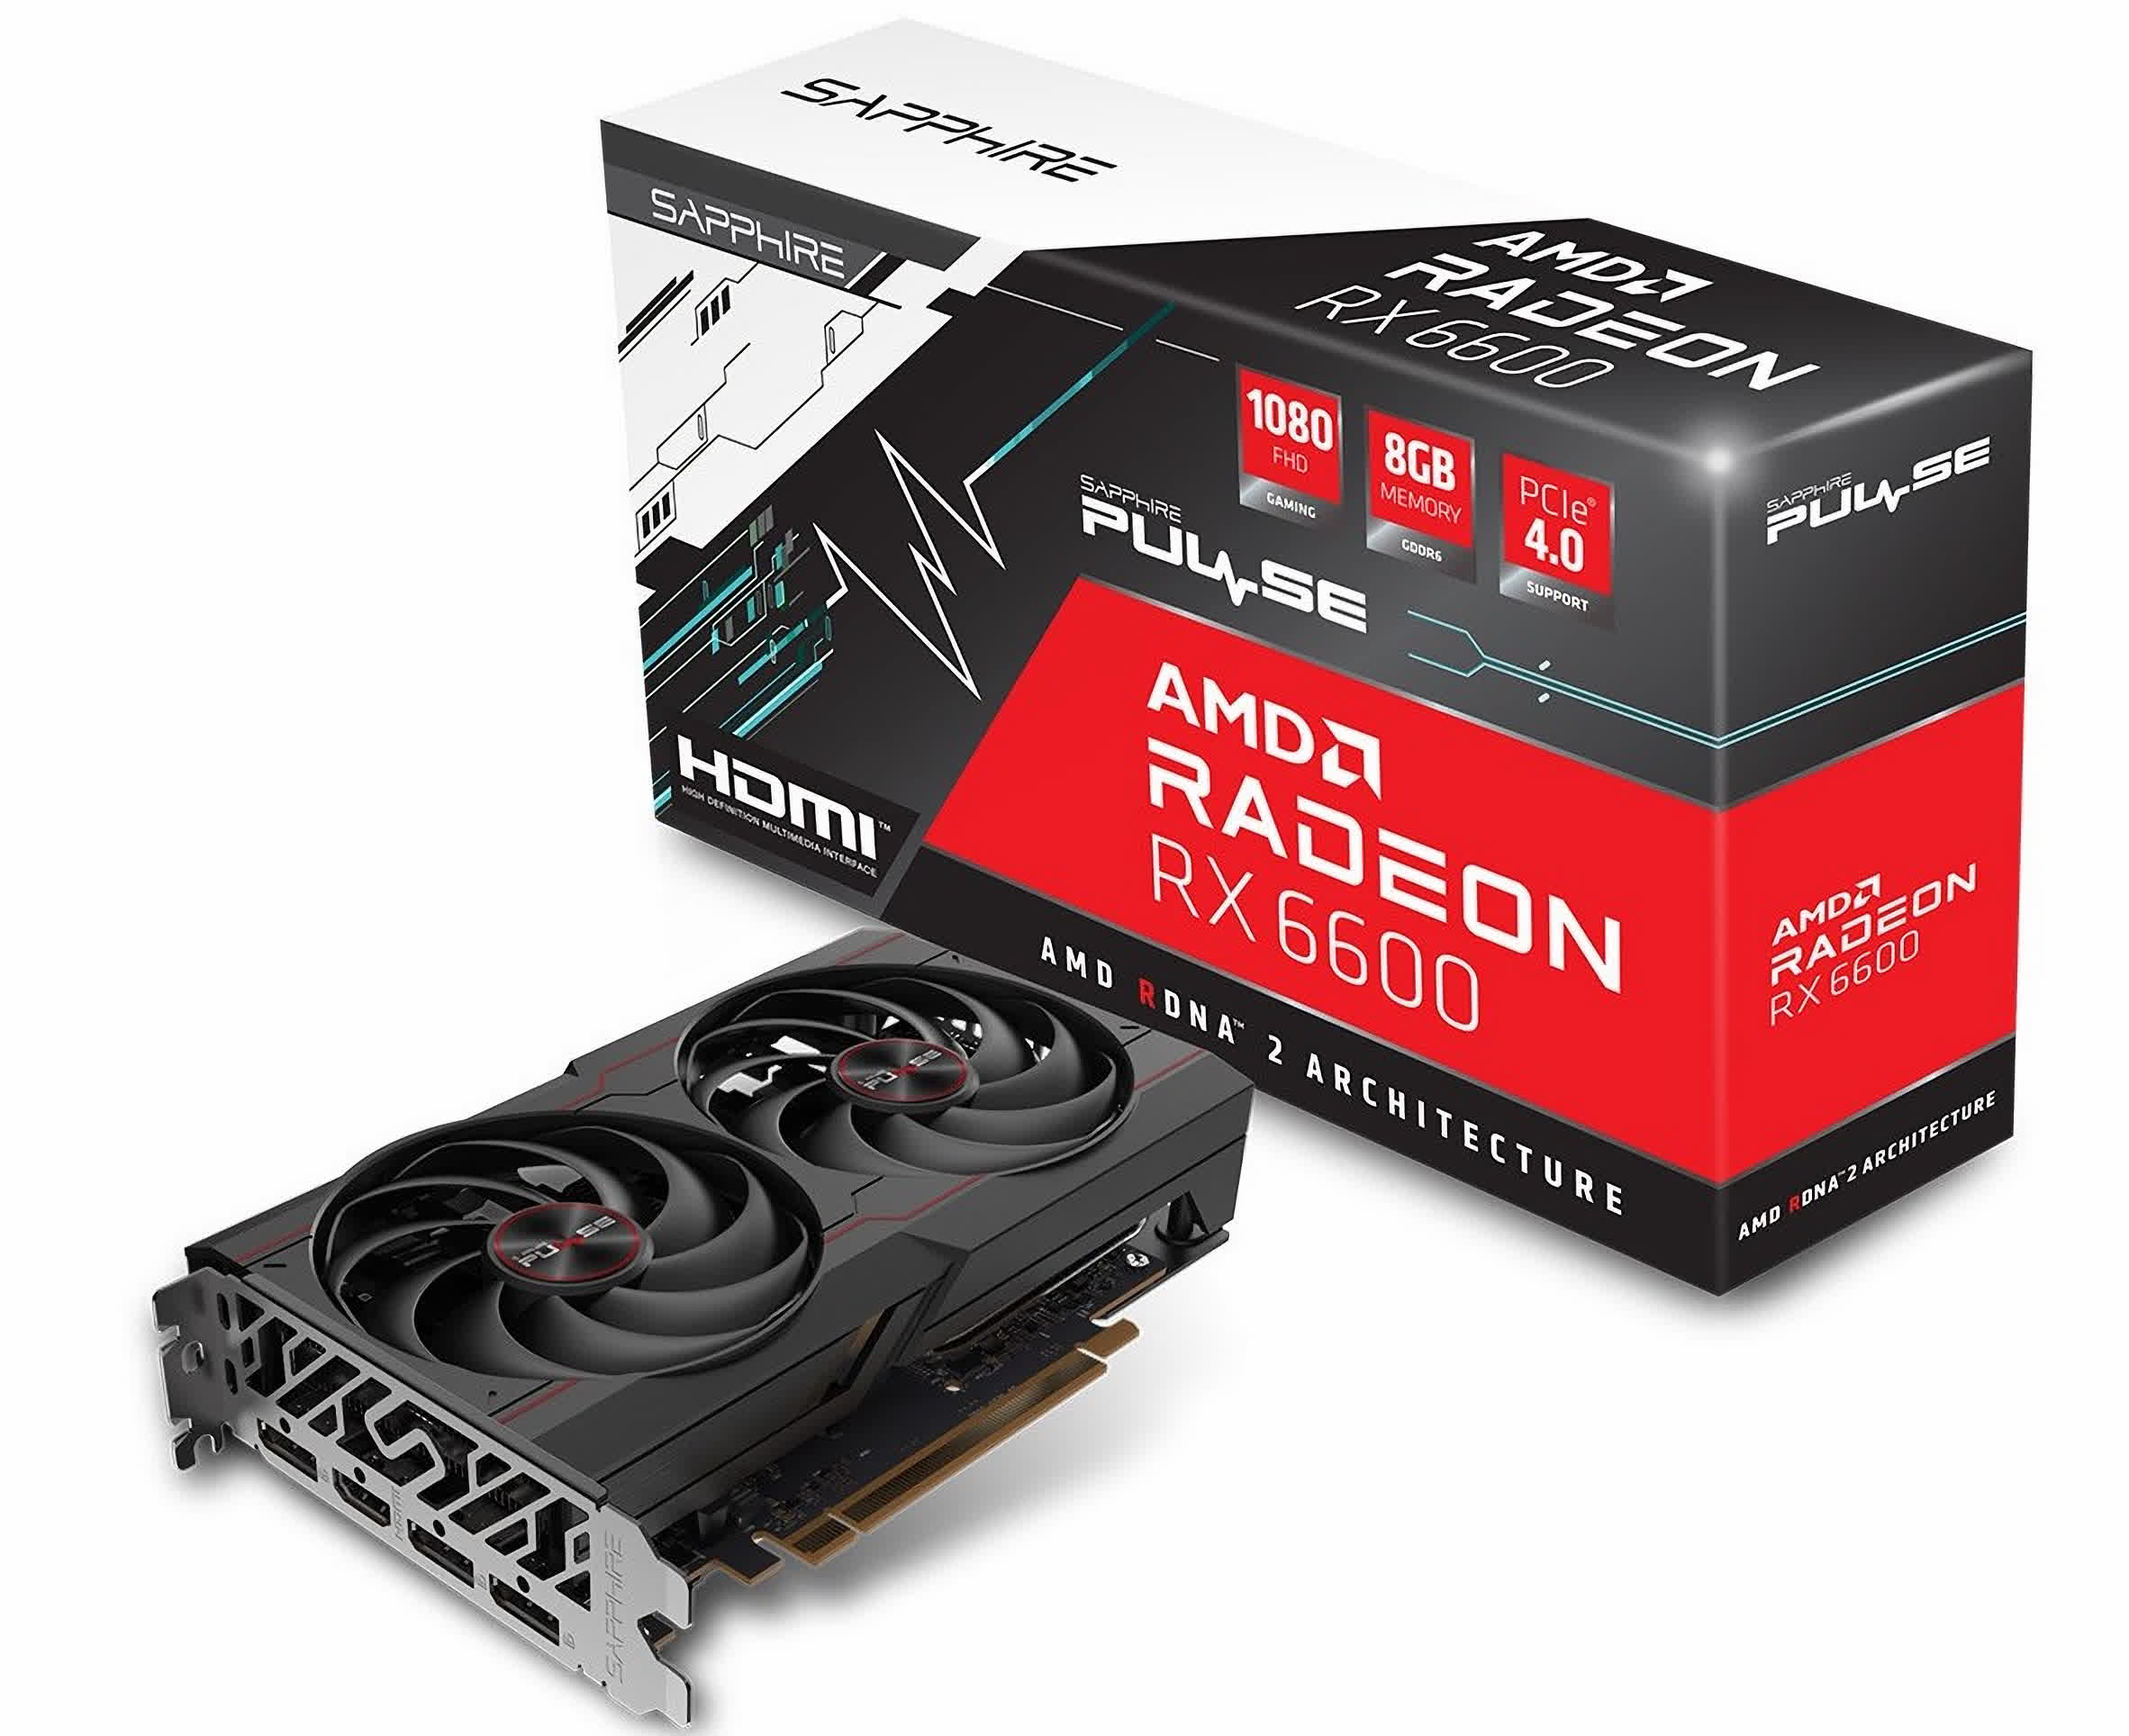 AMD's budget-oriented Radeon RX 6600 could launch as soon as next month